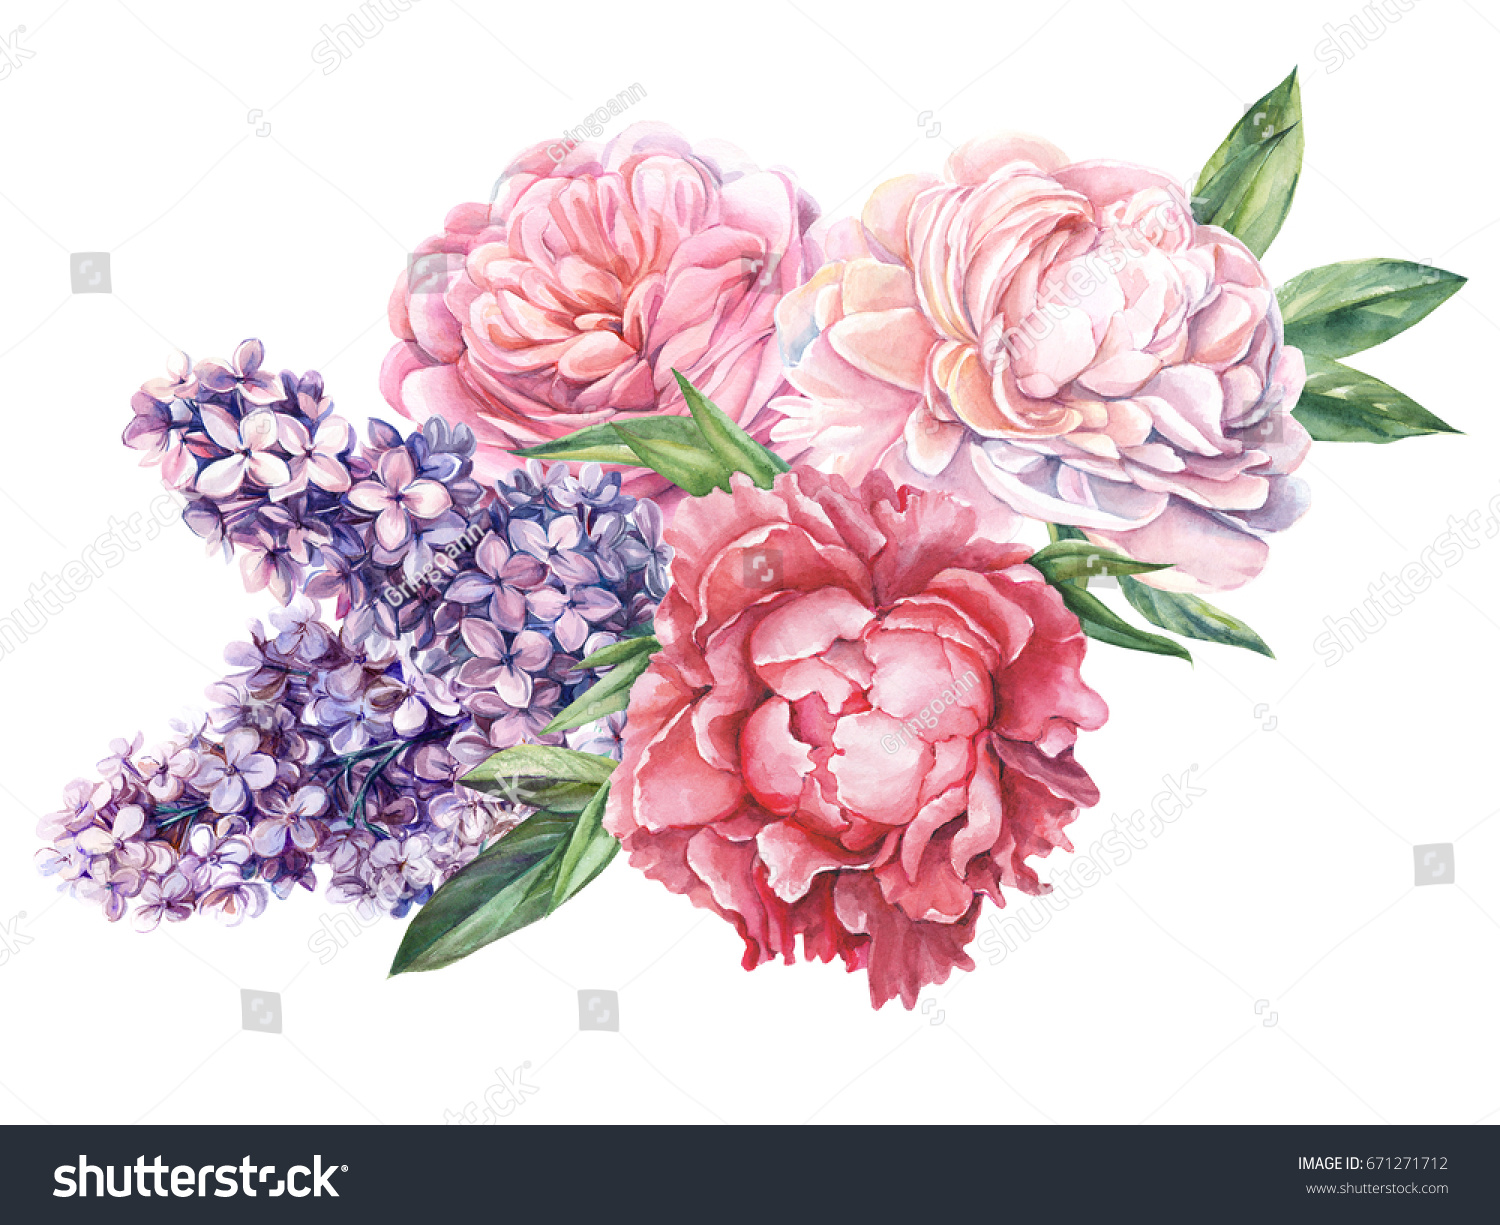 Wedding Bouquet Flowers Peonies Roses Lilacs Stock Illustration ...